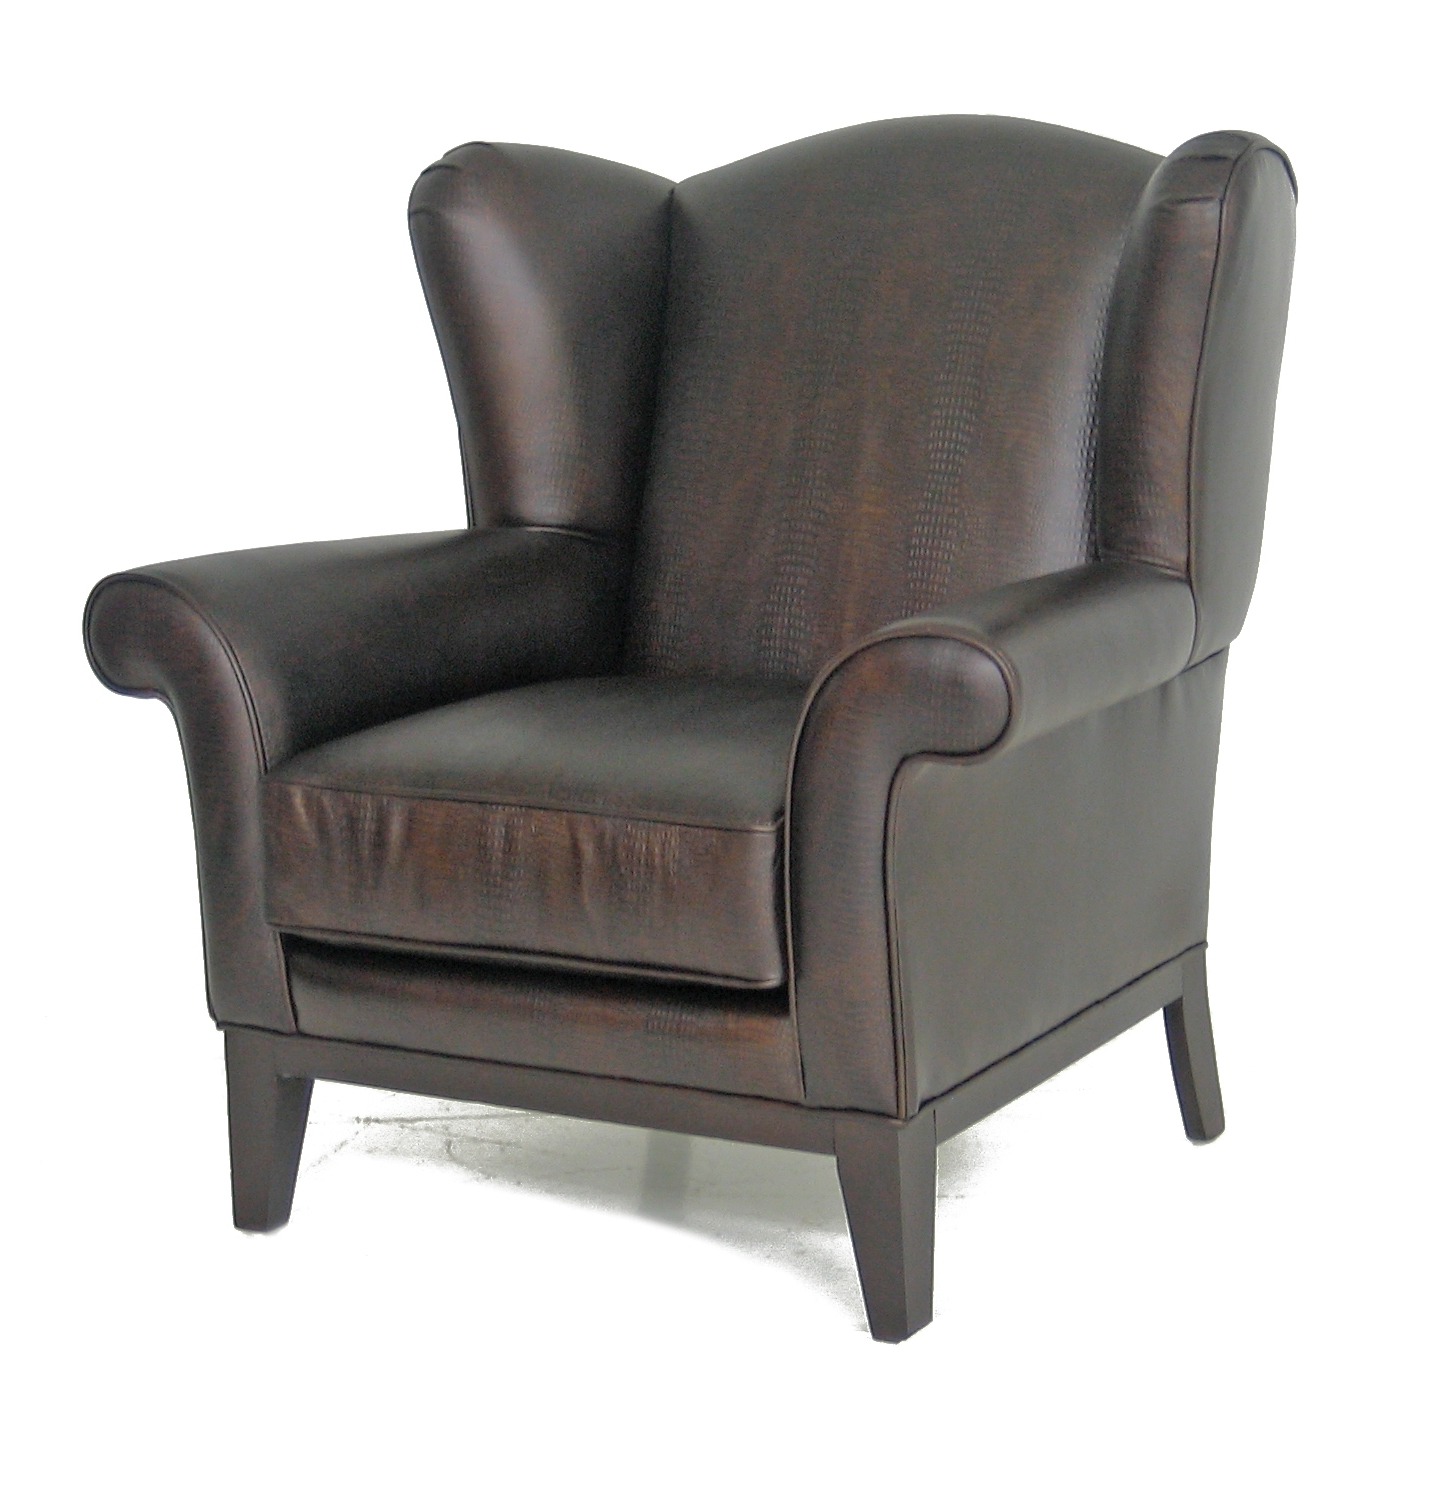 Current Brilliant Ideas Of Furniture Sofa Armchair For Big Fy Sofa Chairs For Sofas And Chairs (View 18 of 20)